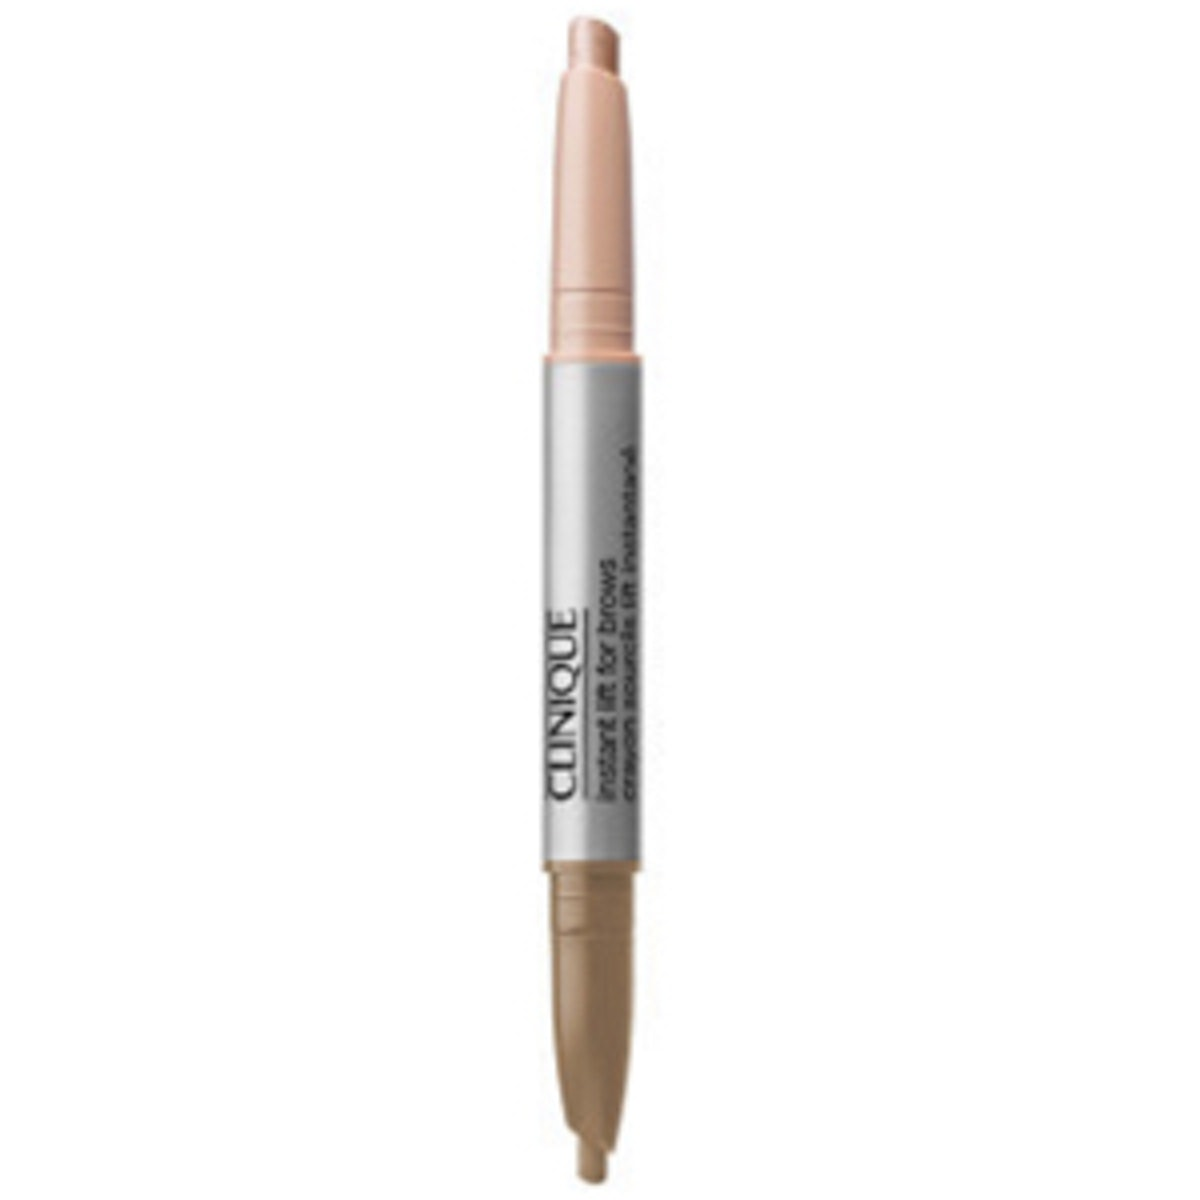 Instant Lift For Brows